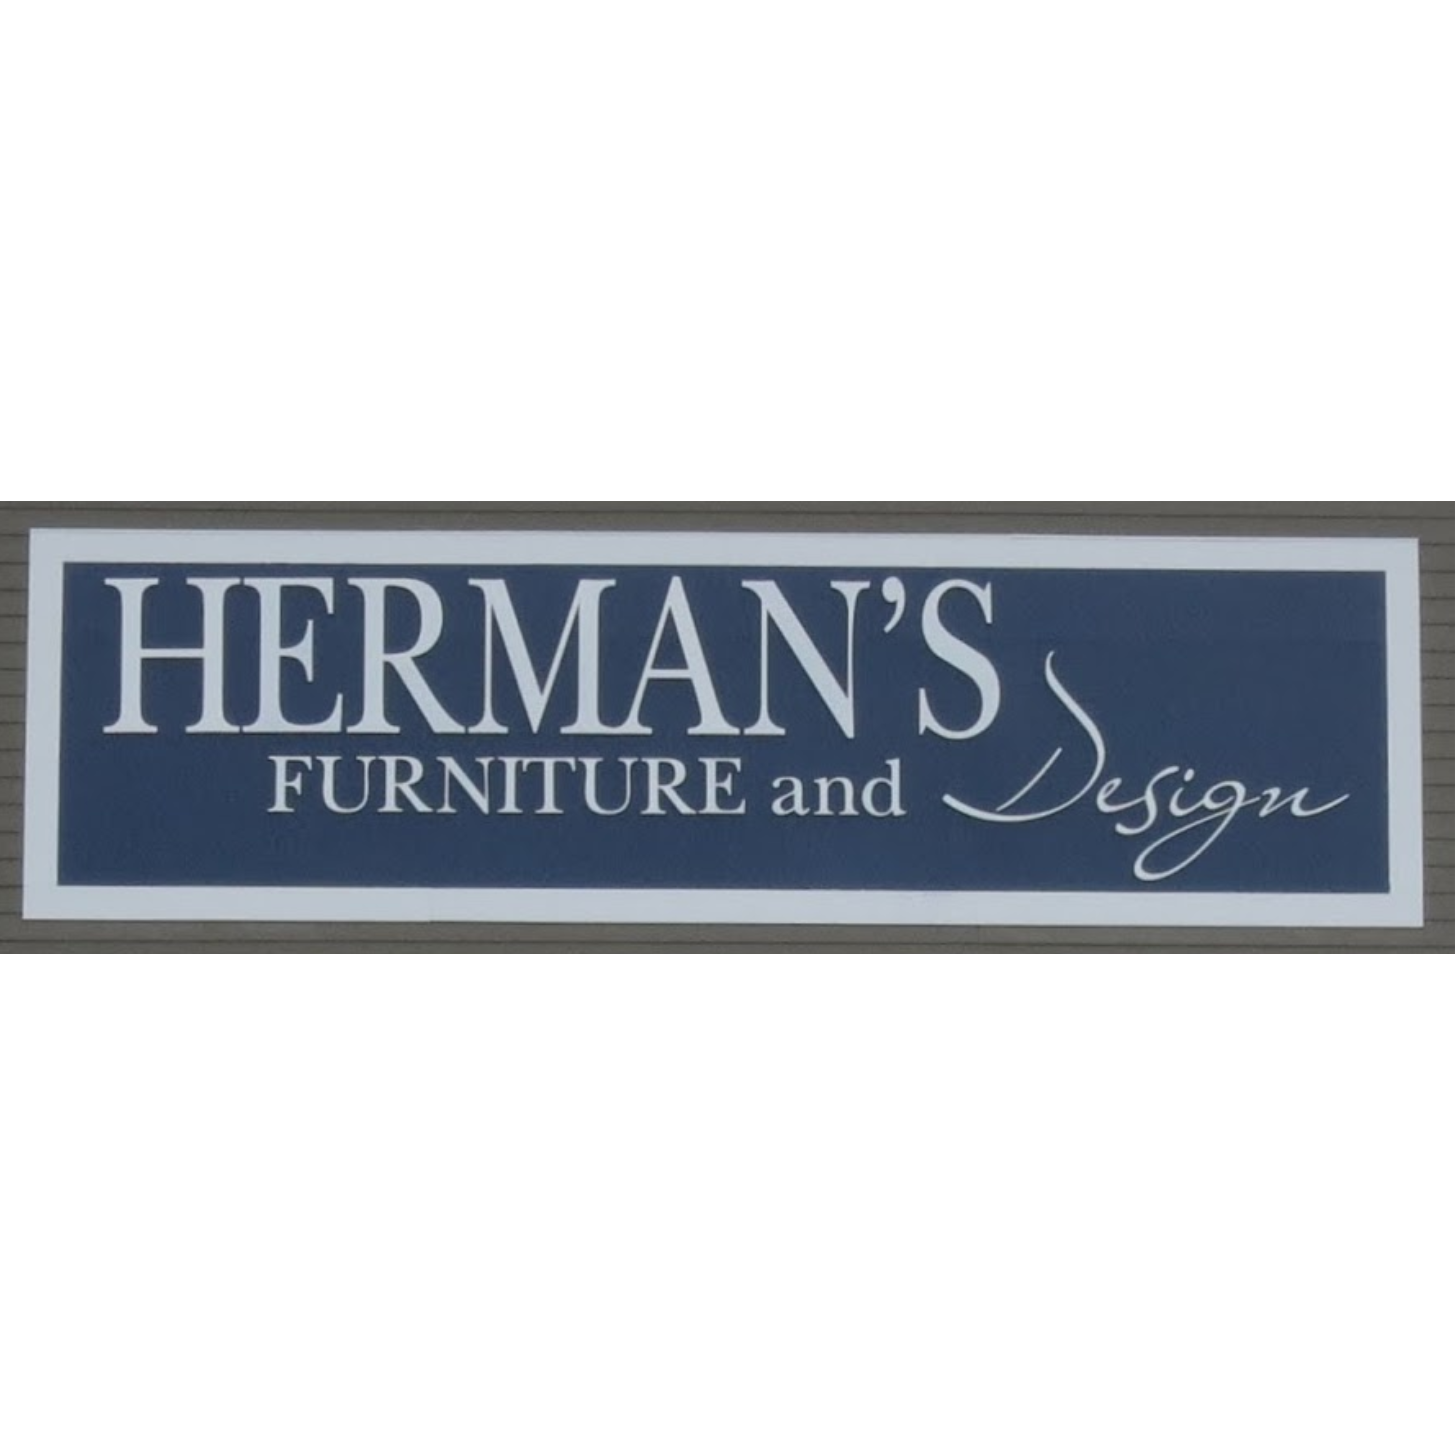 Herman's Furniture & Design - Sandusky, OH - Furniture Stores